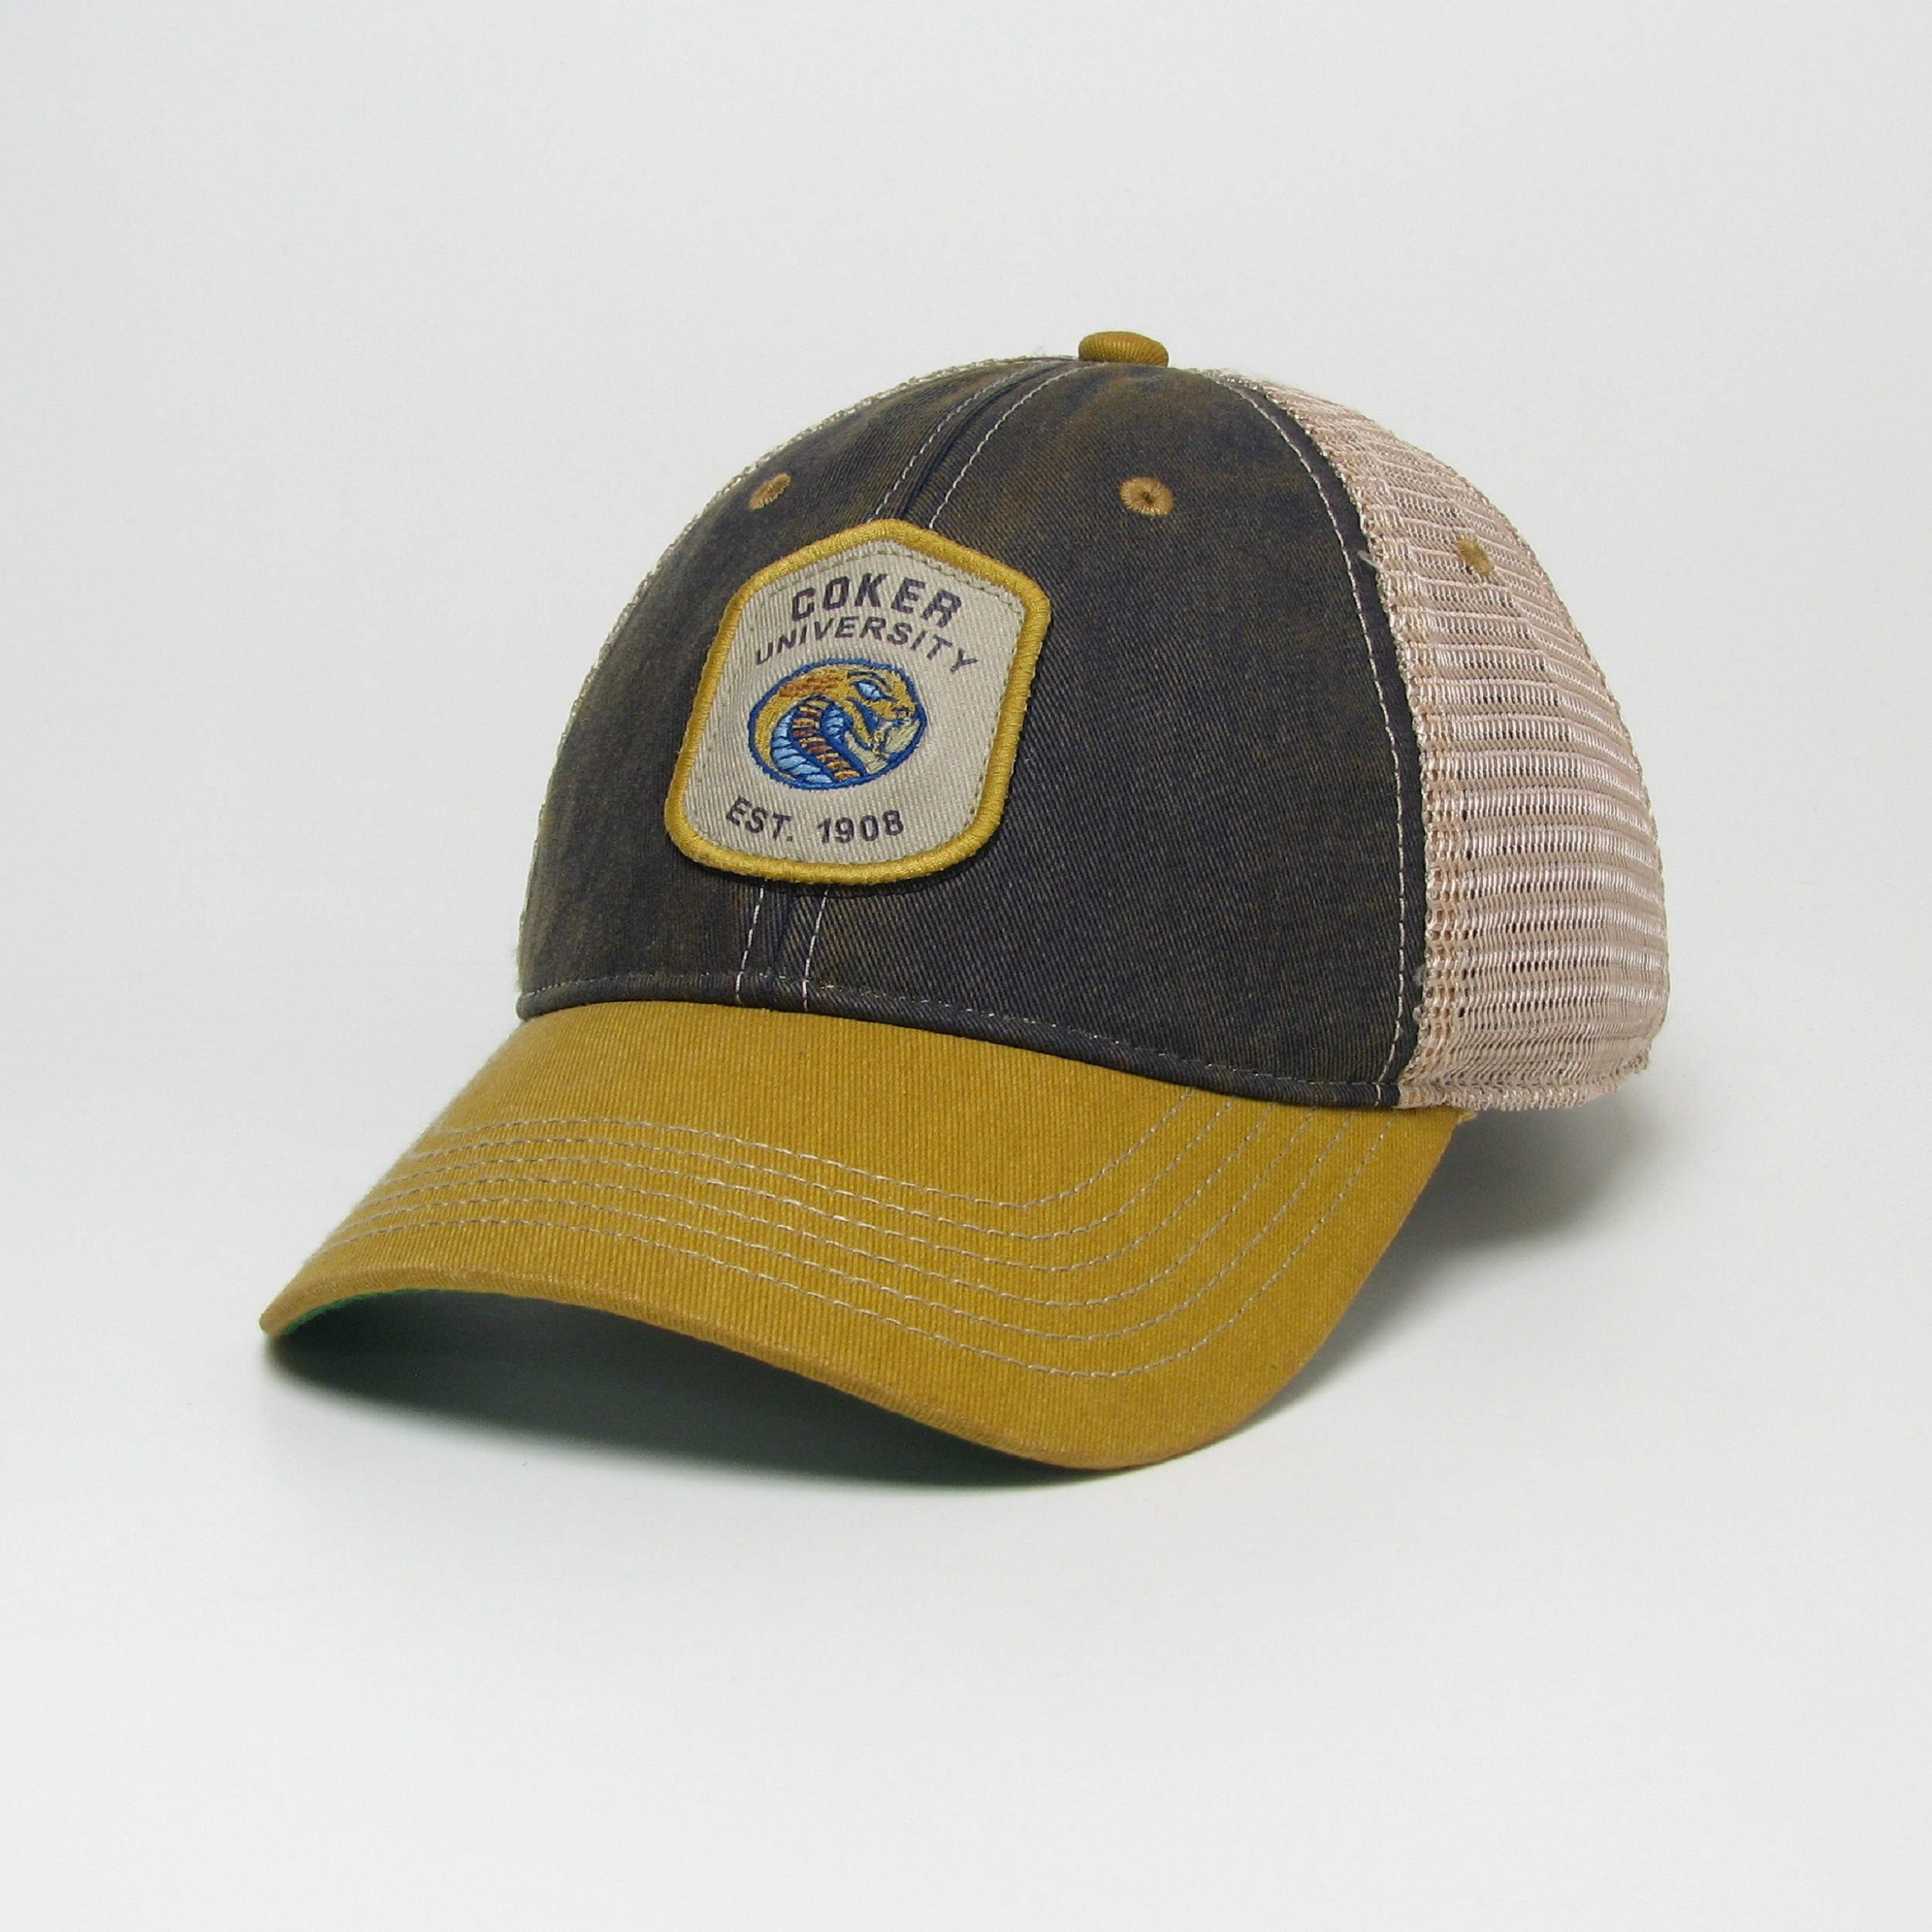 Cover Image For Hat Cotton OLD FAVORITE TRUCKER COKER UNIVERSITY EST 1908